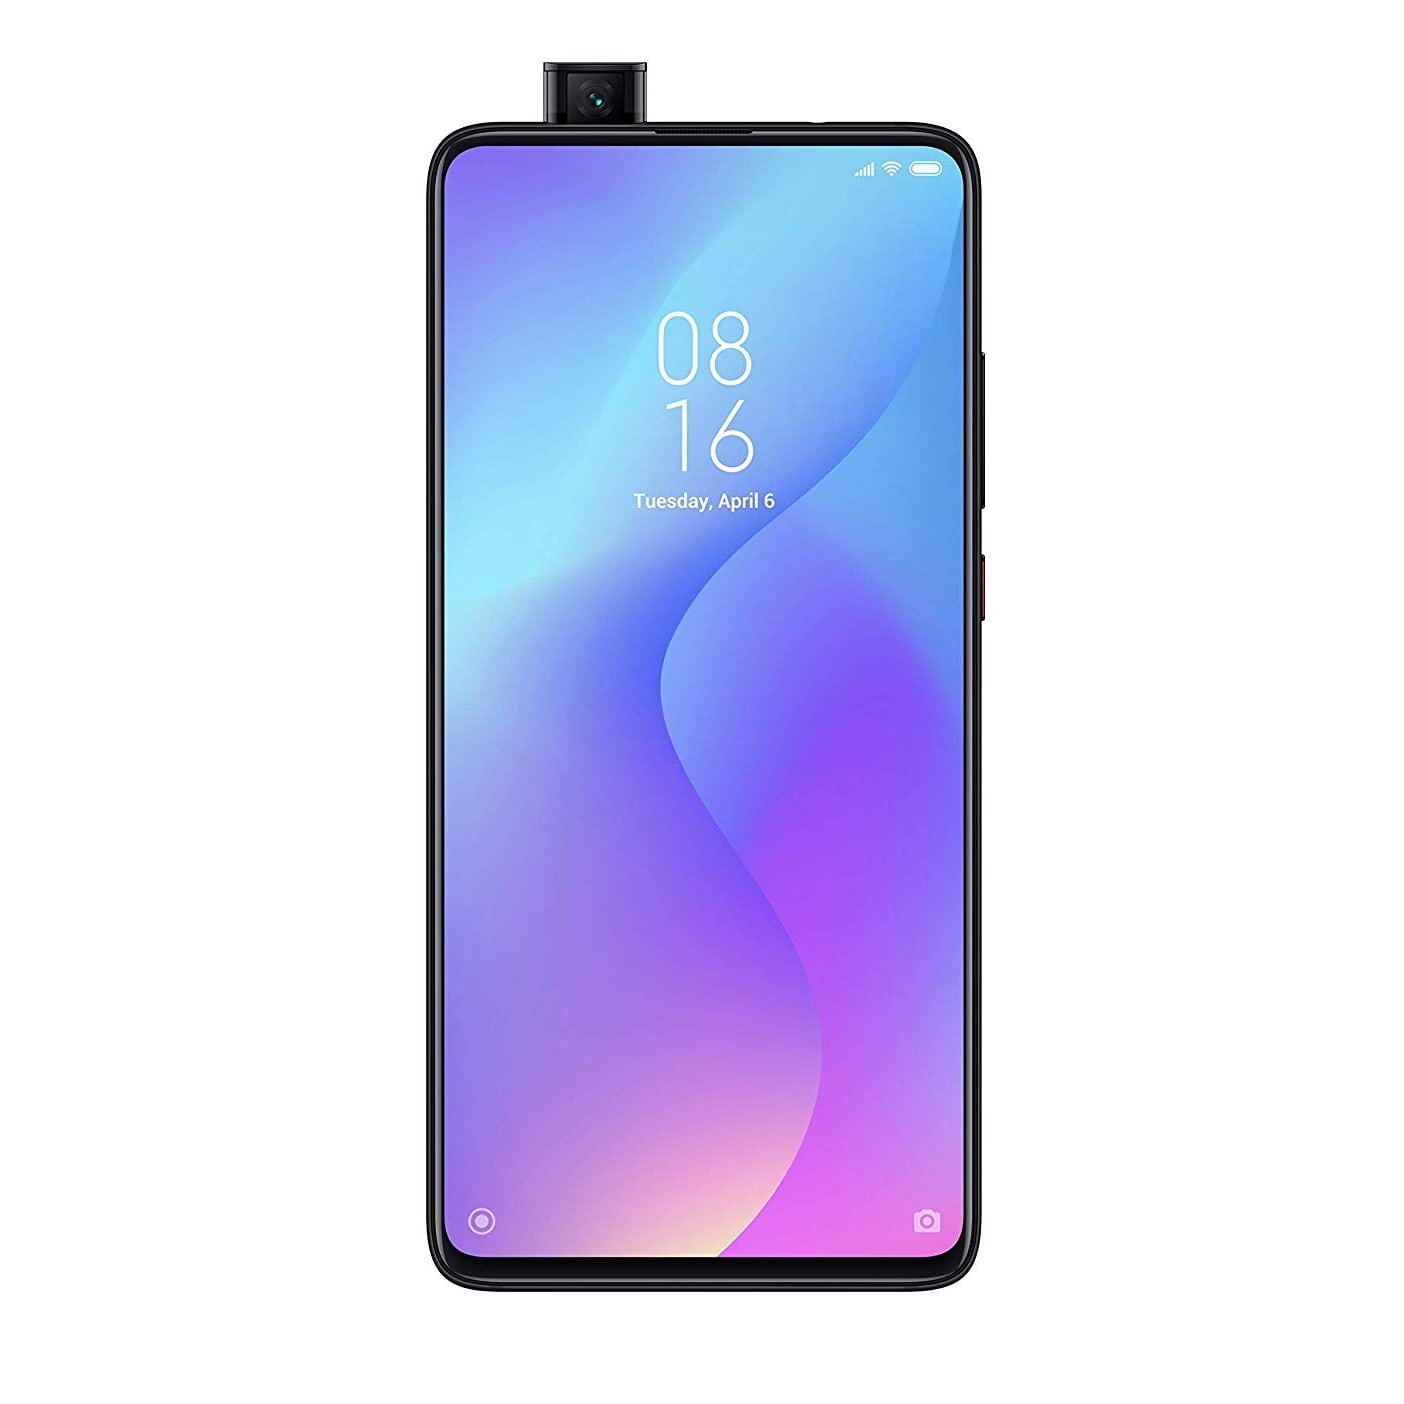 7. Xiaomi Mi 9T – Best for Perfect Balance of Design, Performance and Features